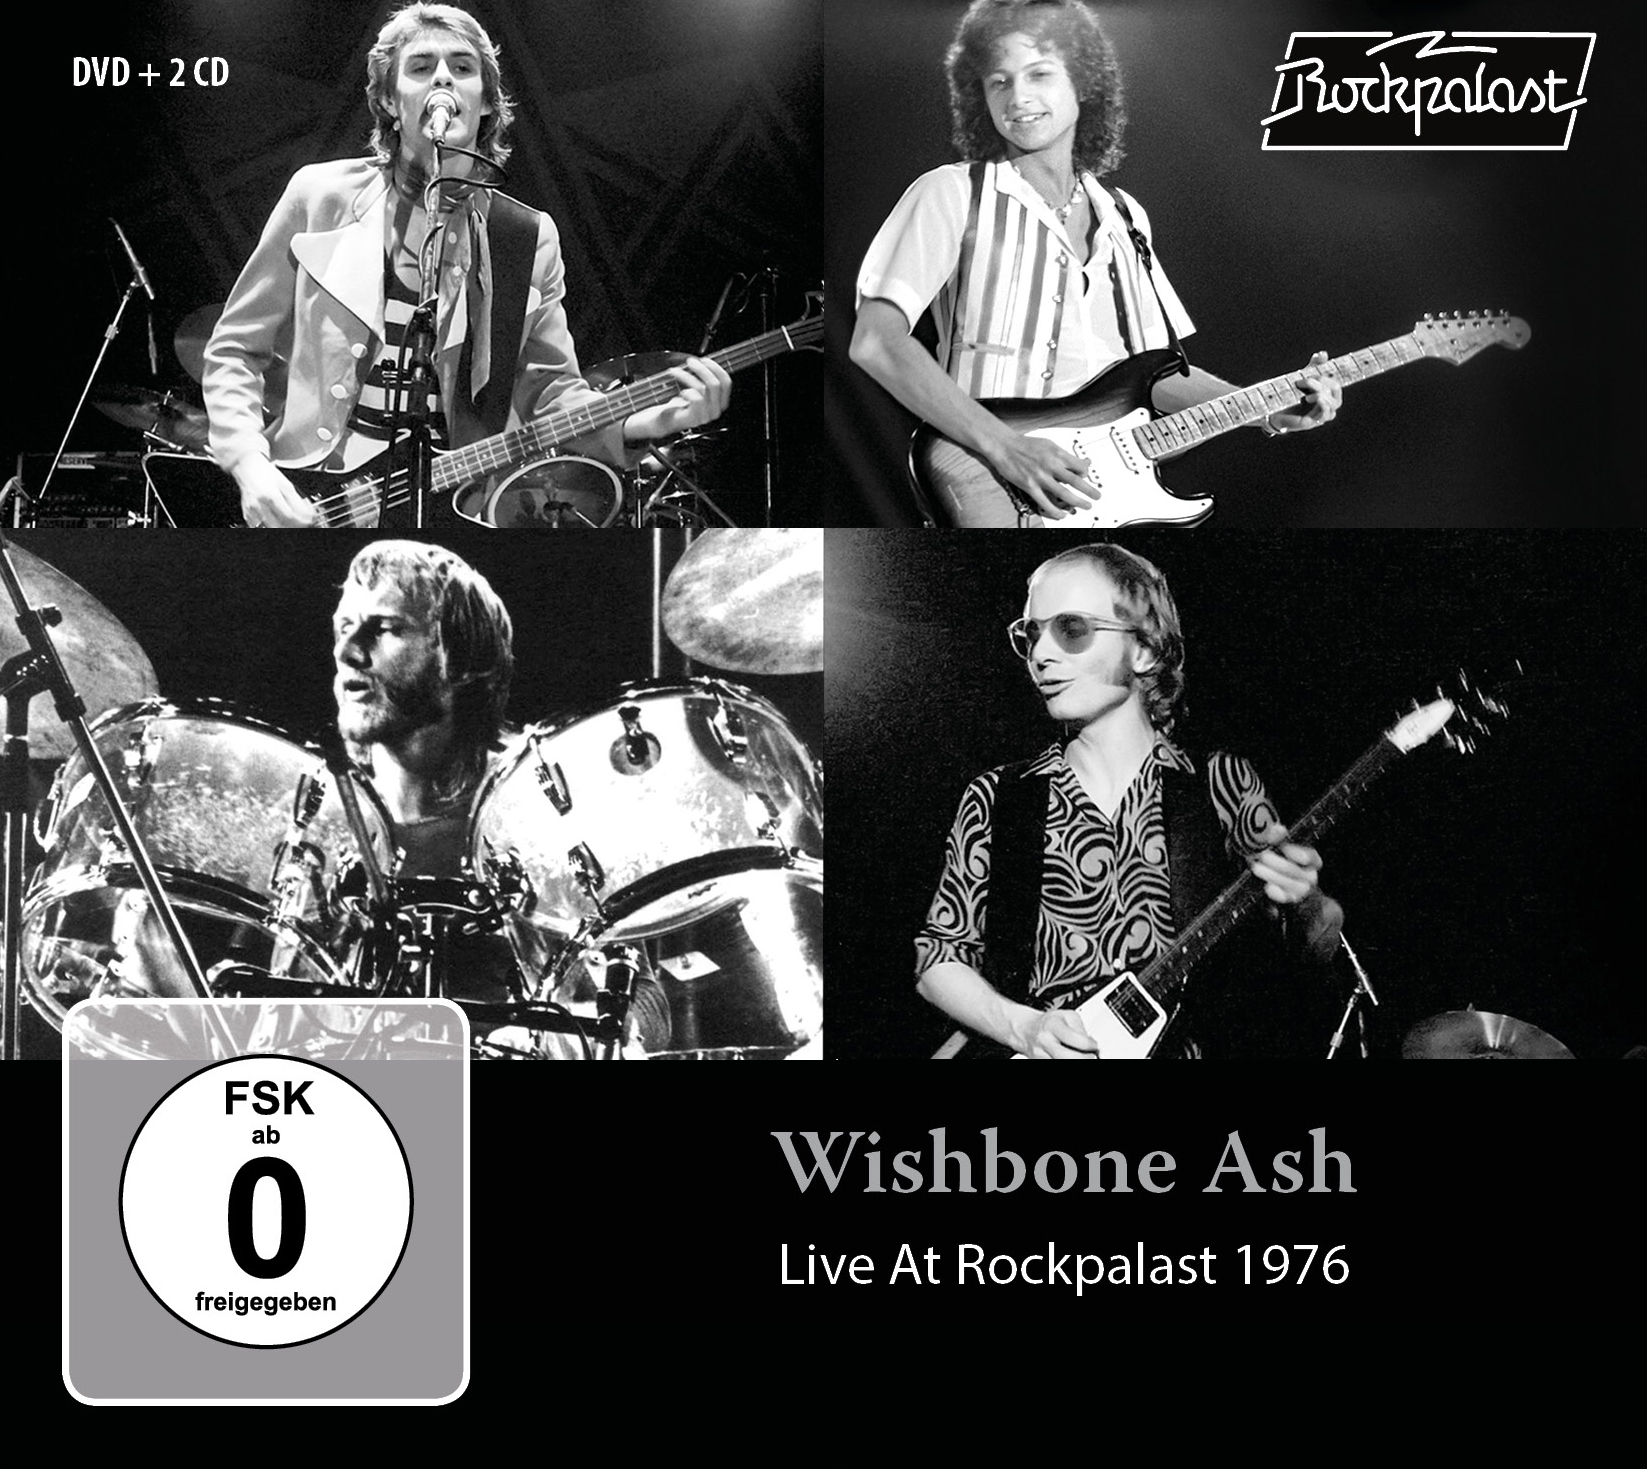 Wishbone Ash - Live At Rockpalast 1976 (CD/DVD)